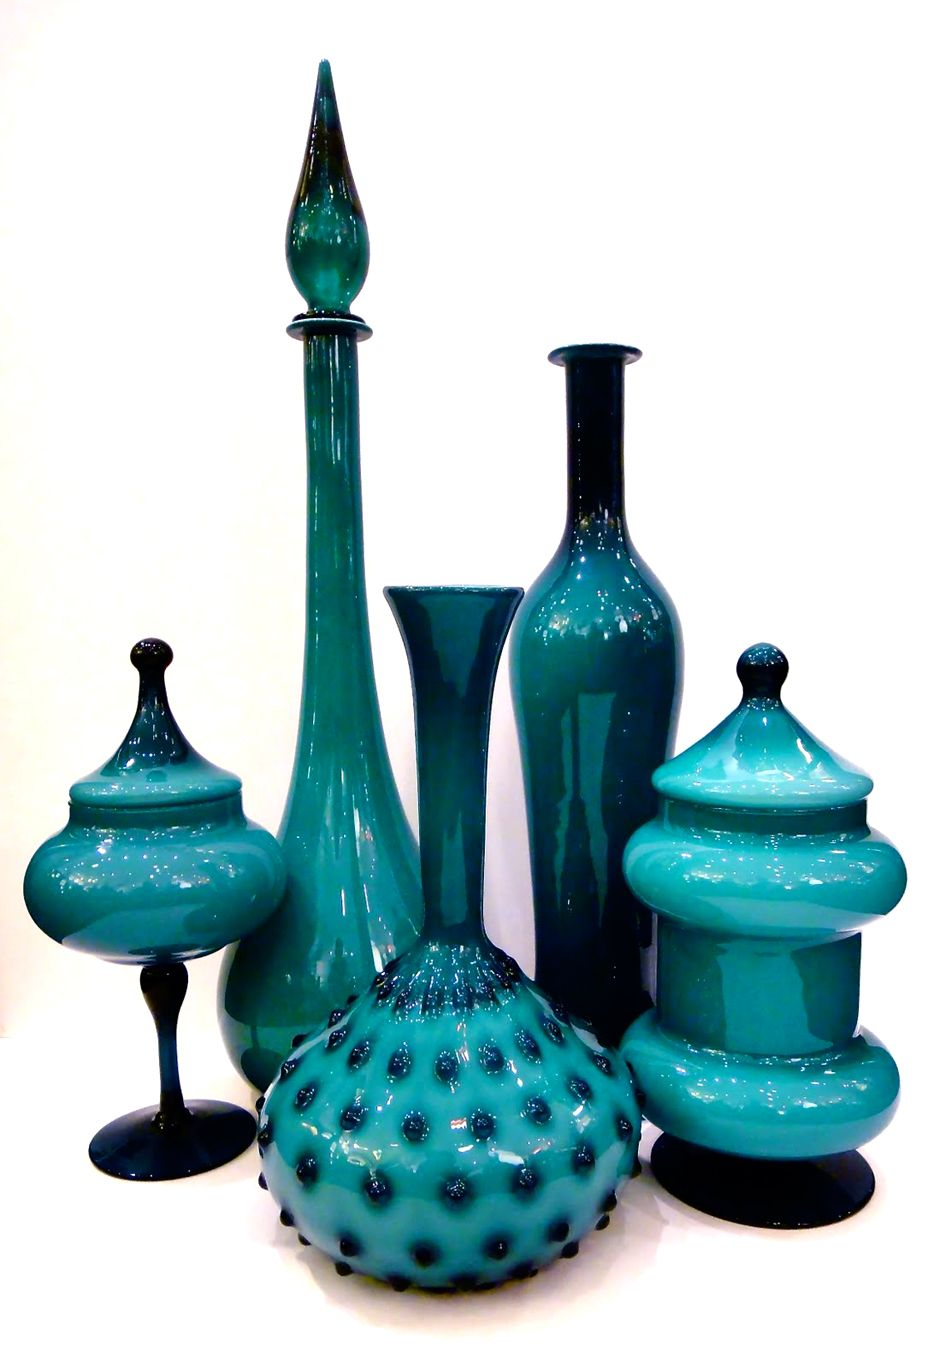 Turquoiseteal colored mid century modern glass collection po a turquoiseteal colored mid century modern glass collection po a reviewsmspy